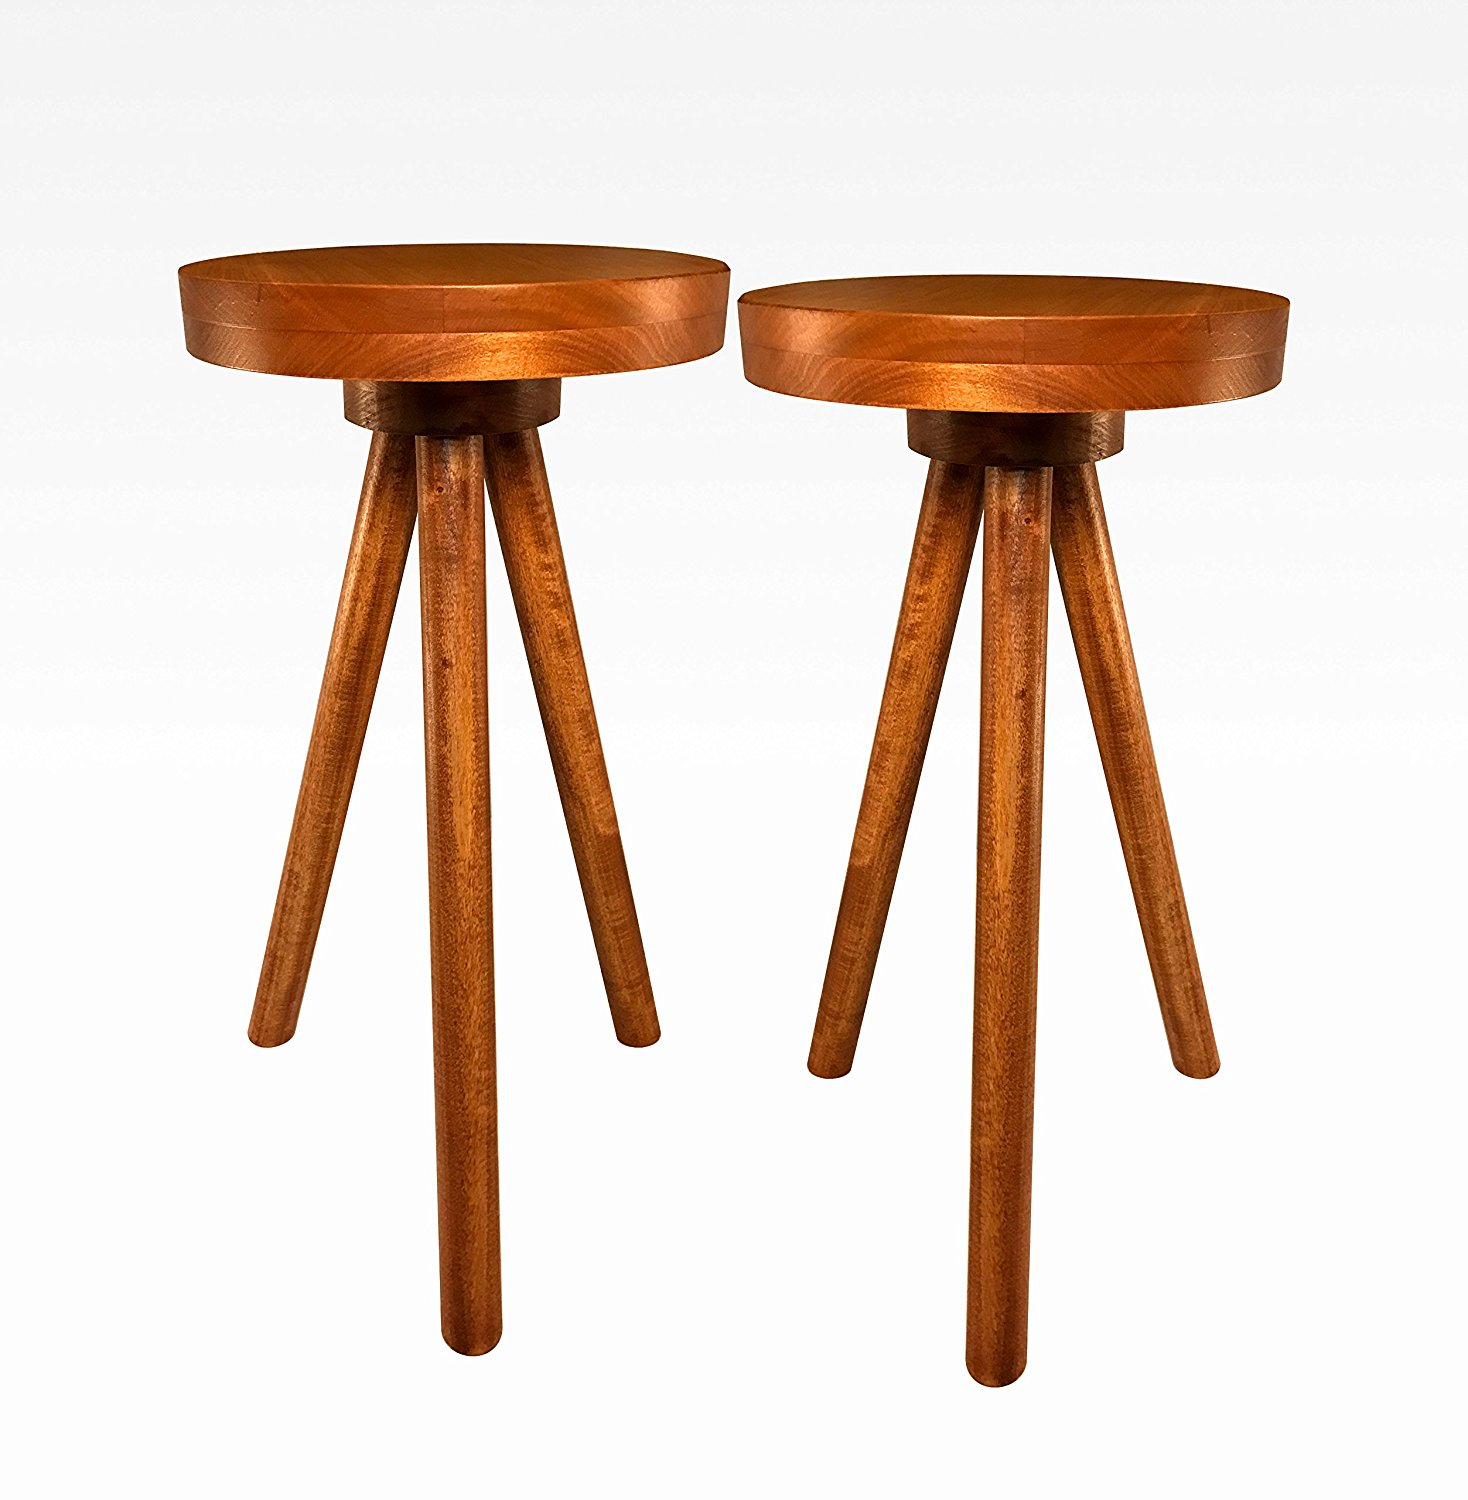 Modern Pair of Side Tables in Cherry by Candlewood Furniture End Table Bar Stool, Bedside Table, Nightstand, Wood